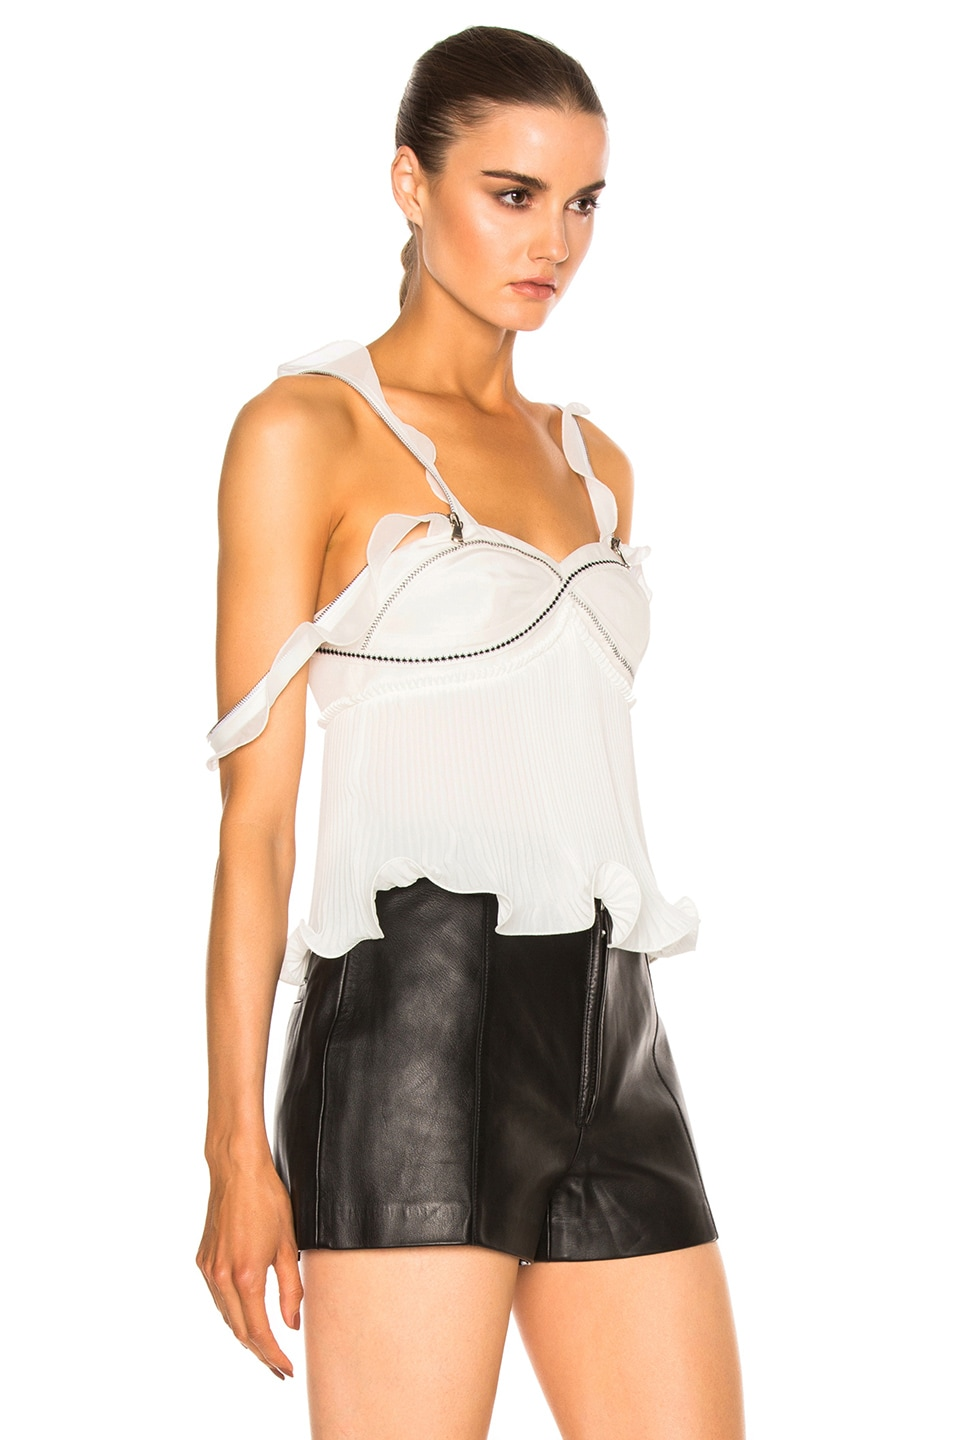 Image 3 of 3.1 phillip lim Sleeveless Pleated Ruffle Top in Antique White